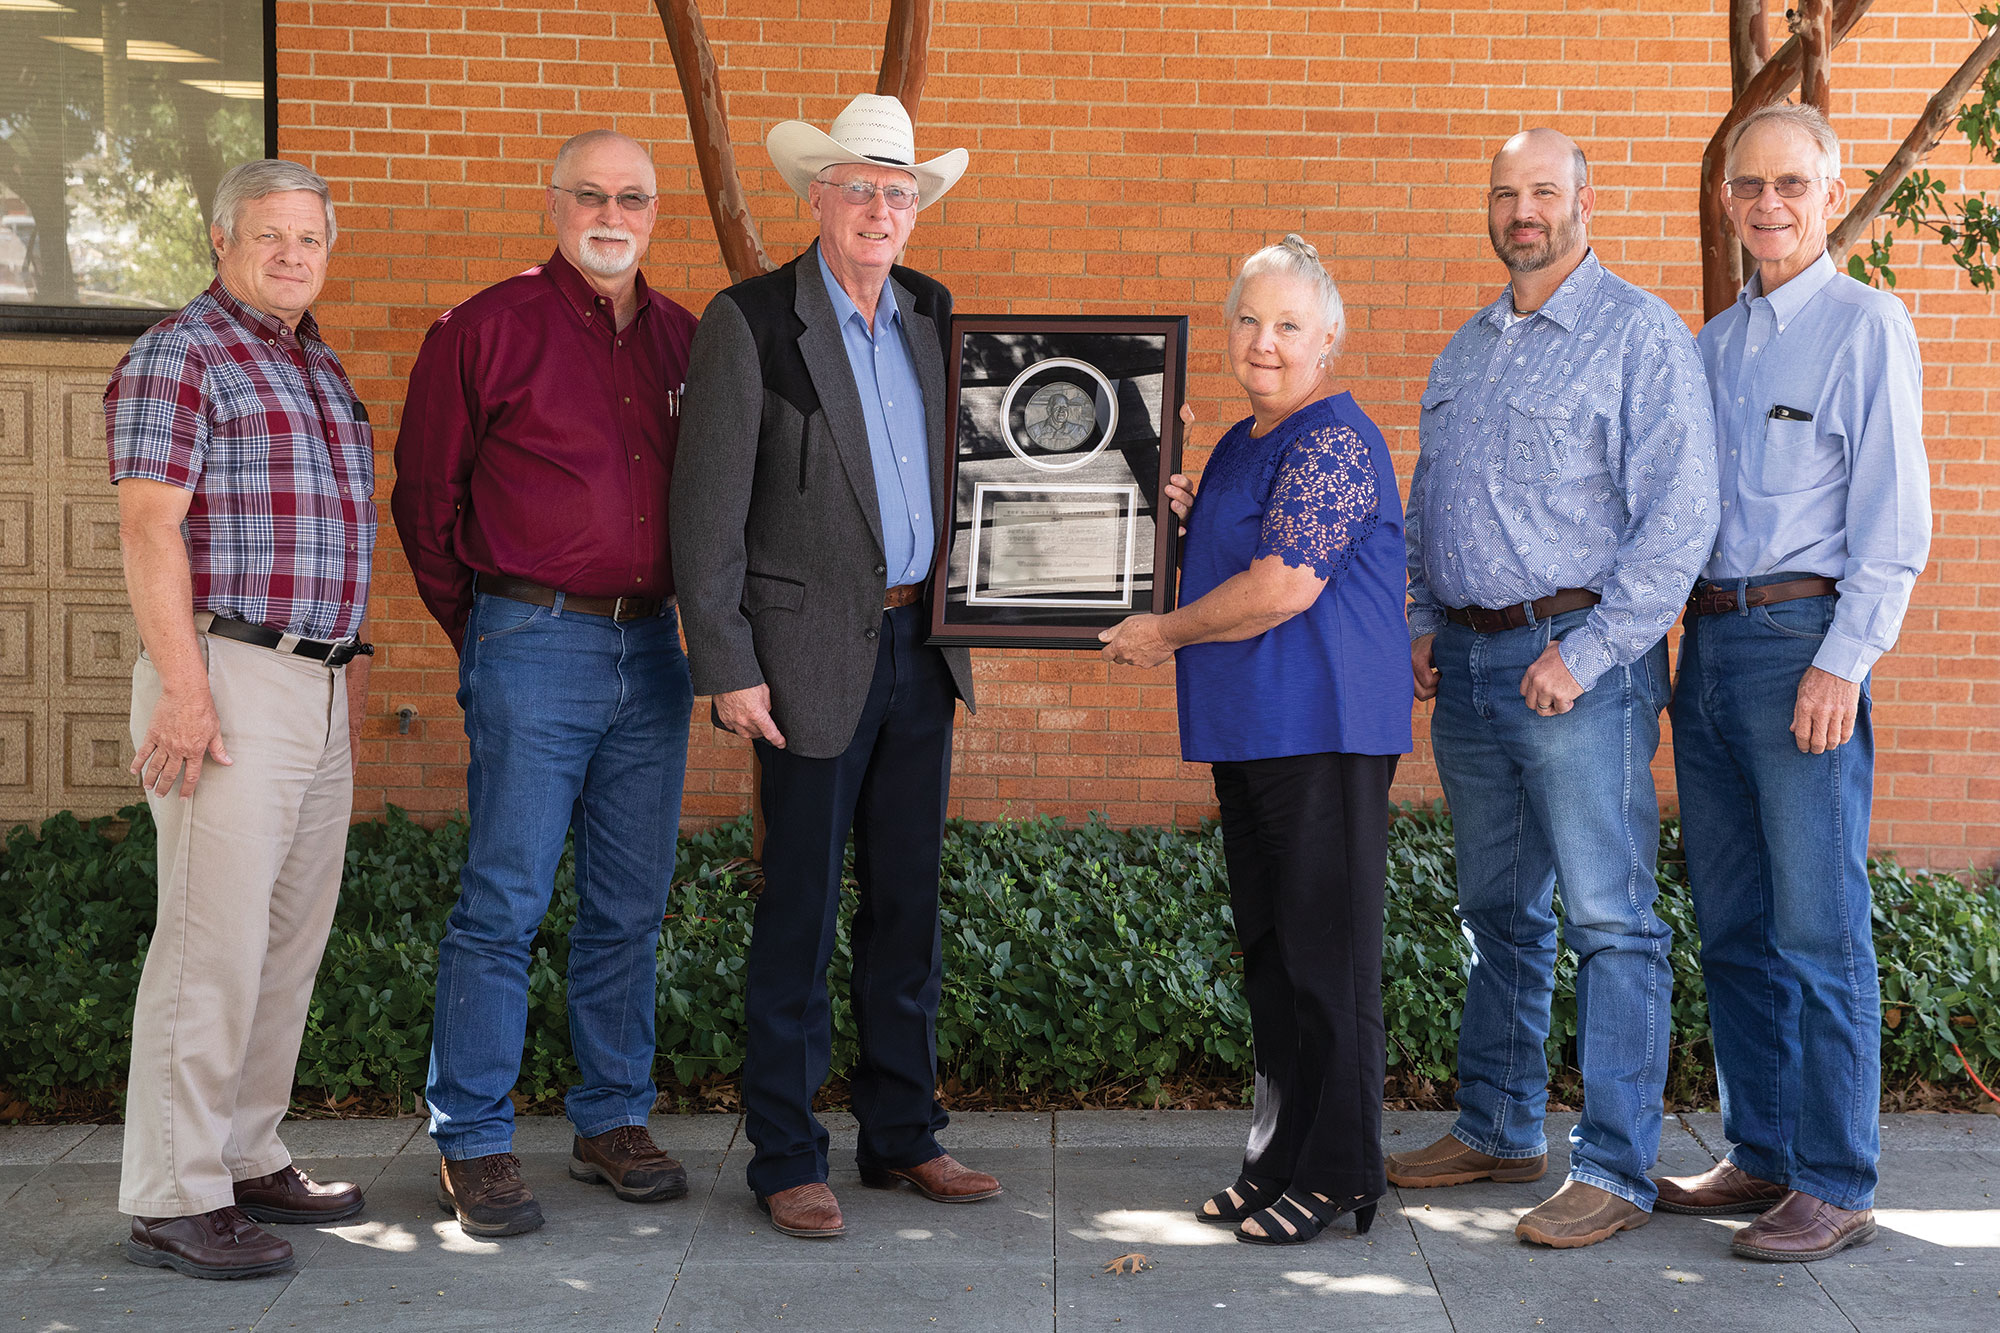 William and Karen Payne were recognized as the 2019 Leonard Wyatt Memorial Outstanding Cooperator Award recipients by Noble Research Institute.